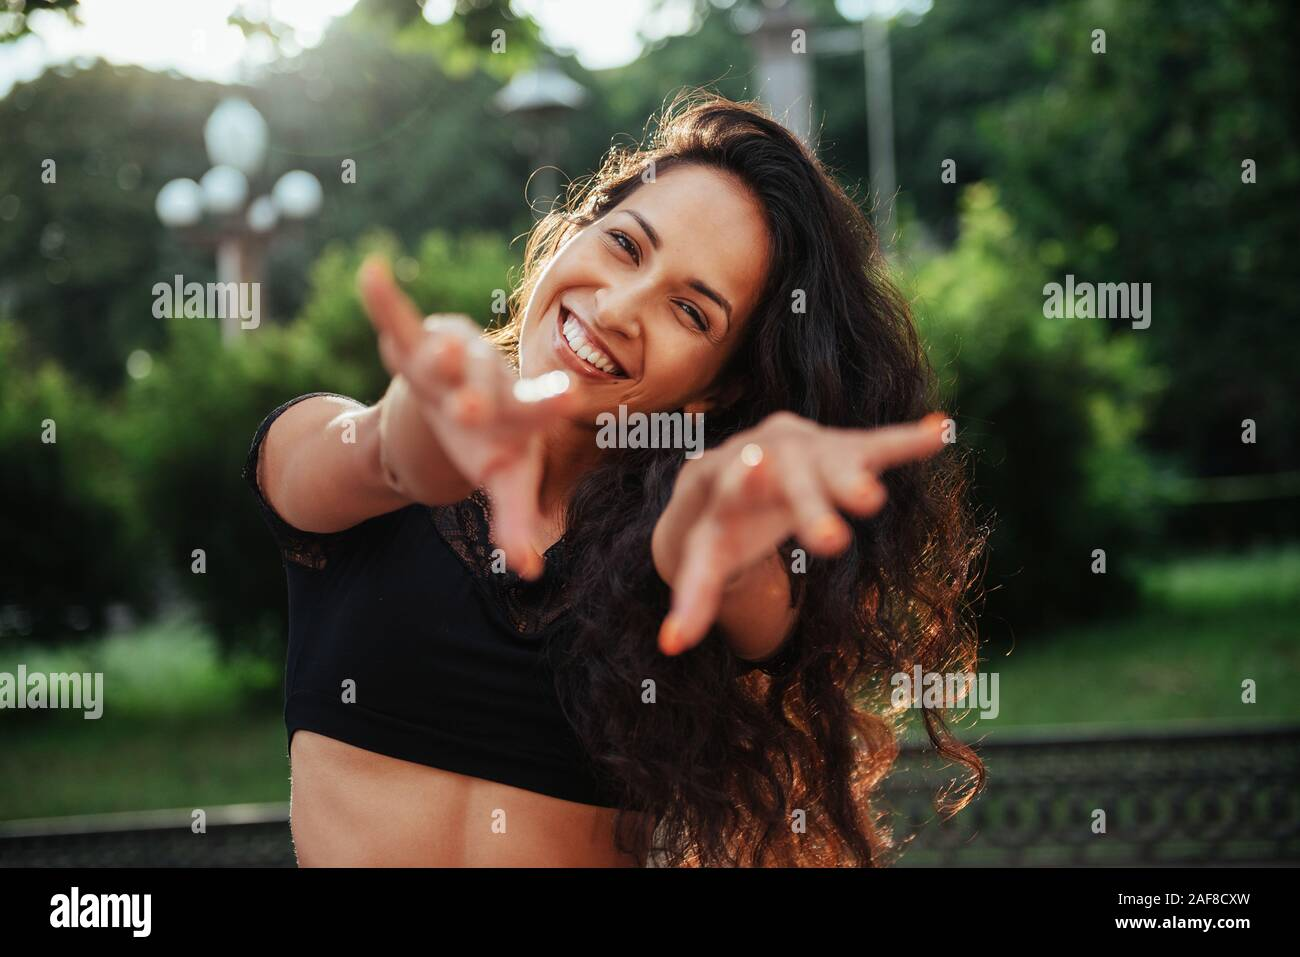 Full of life energy. Beautiful woman with curly black hair have good time in the city at daytime Stock Photo